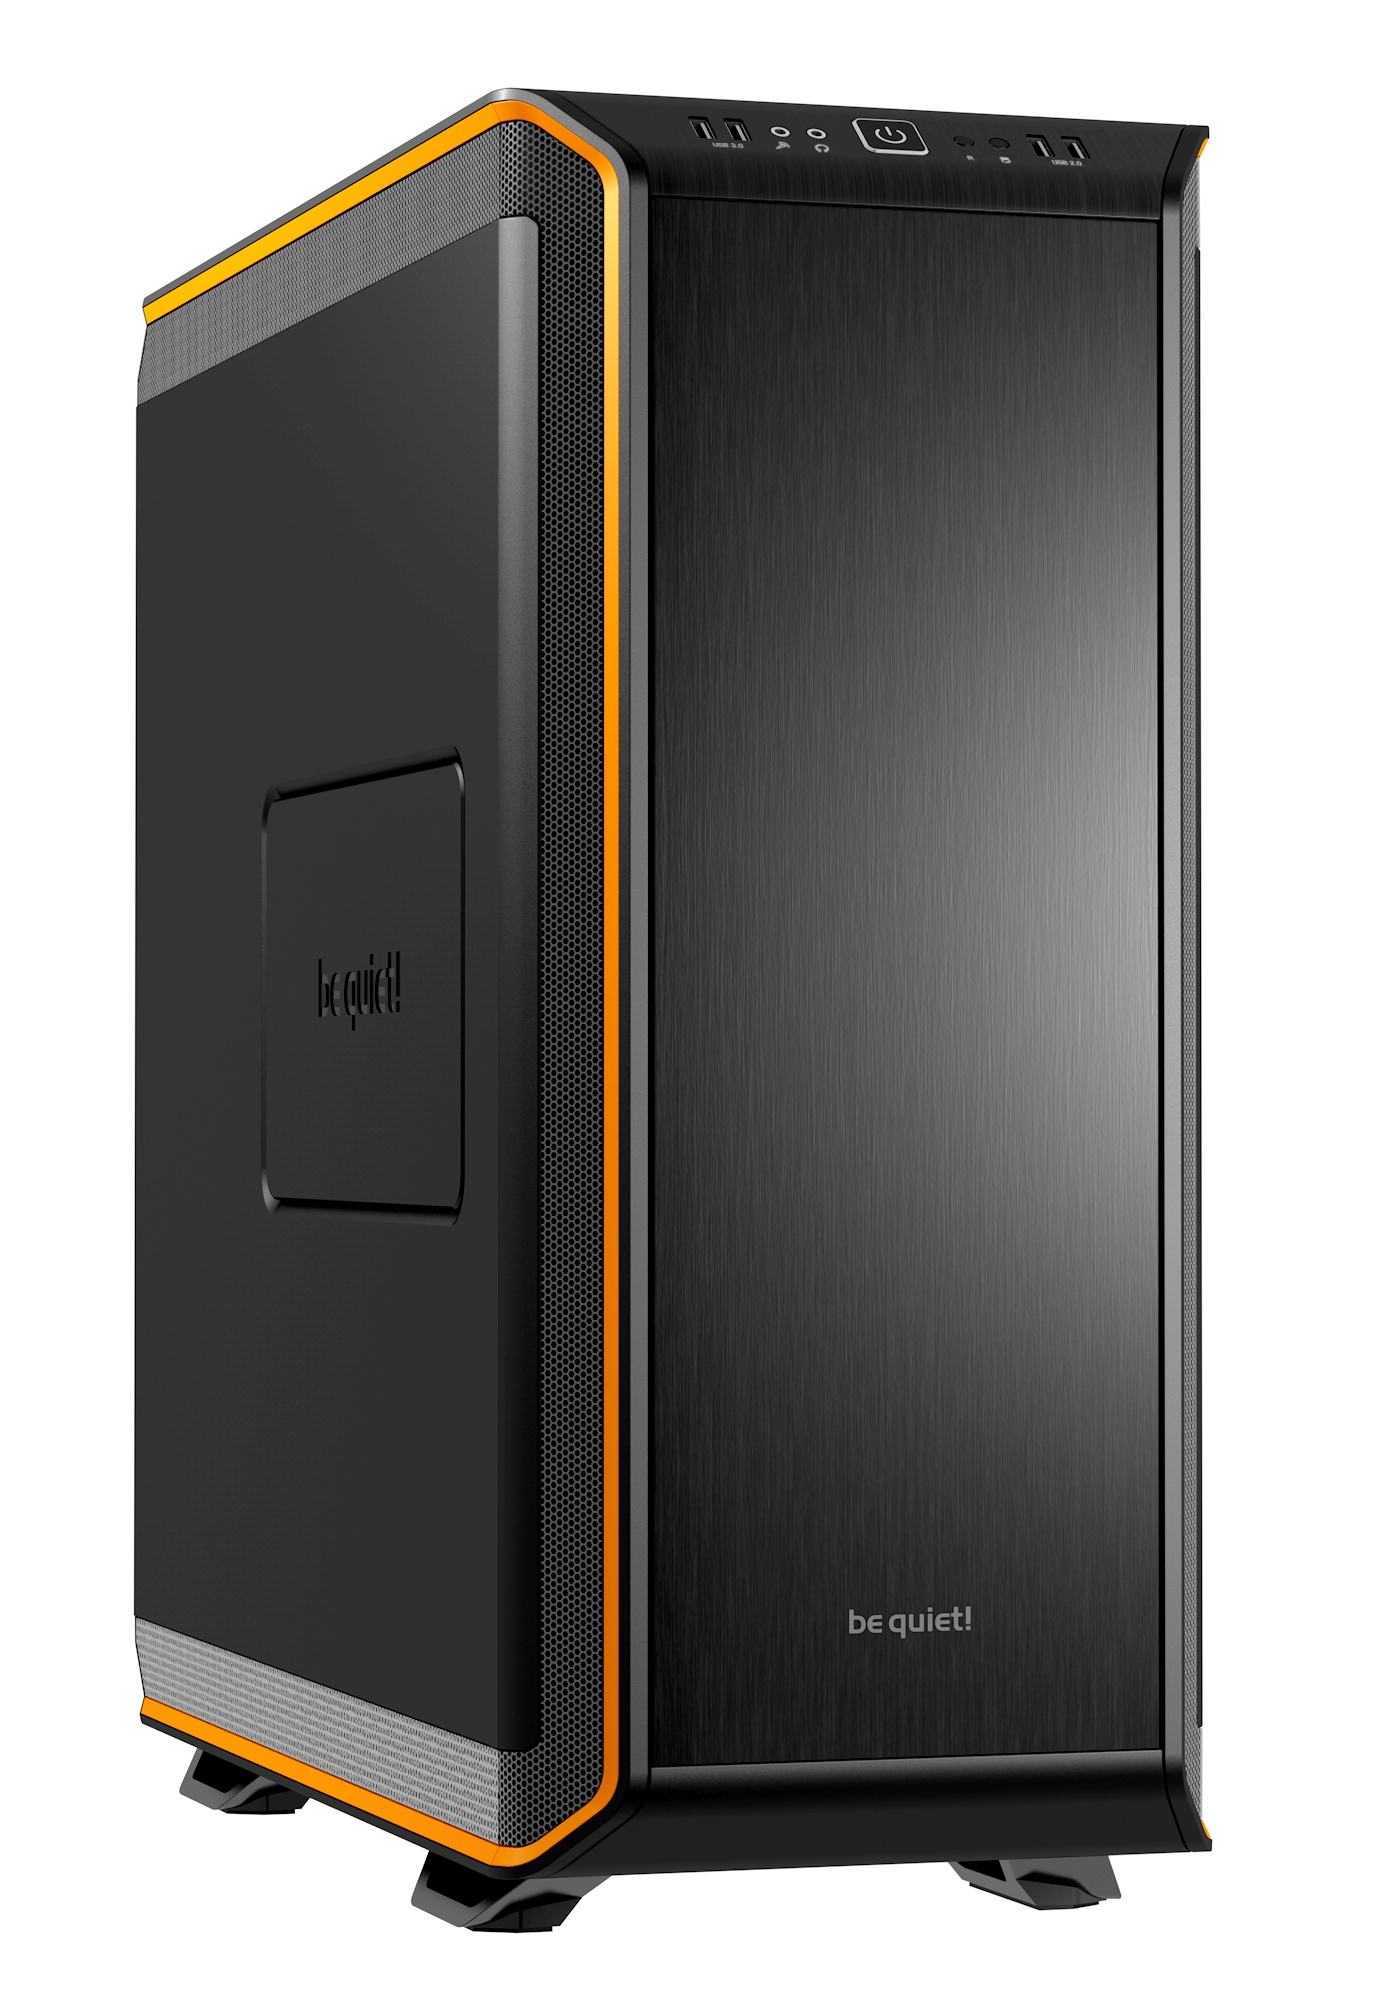 BE QUIET! BG010 DARK BASE 900 DESKTOP BLACK,ORANGE COMPUTER CASE